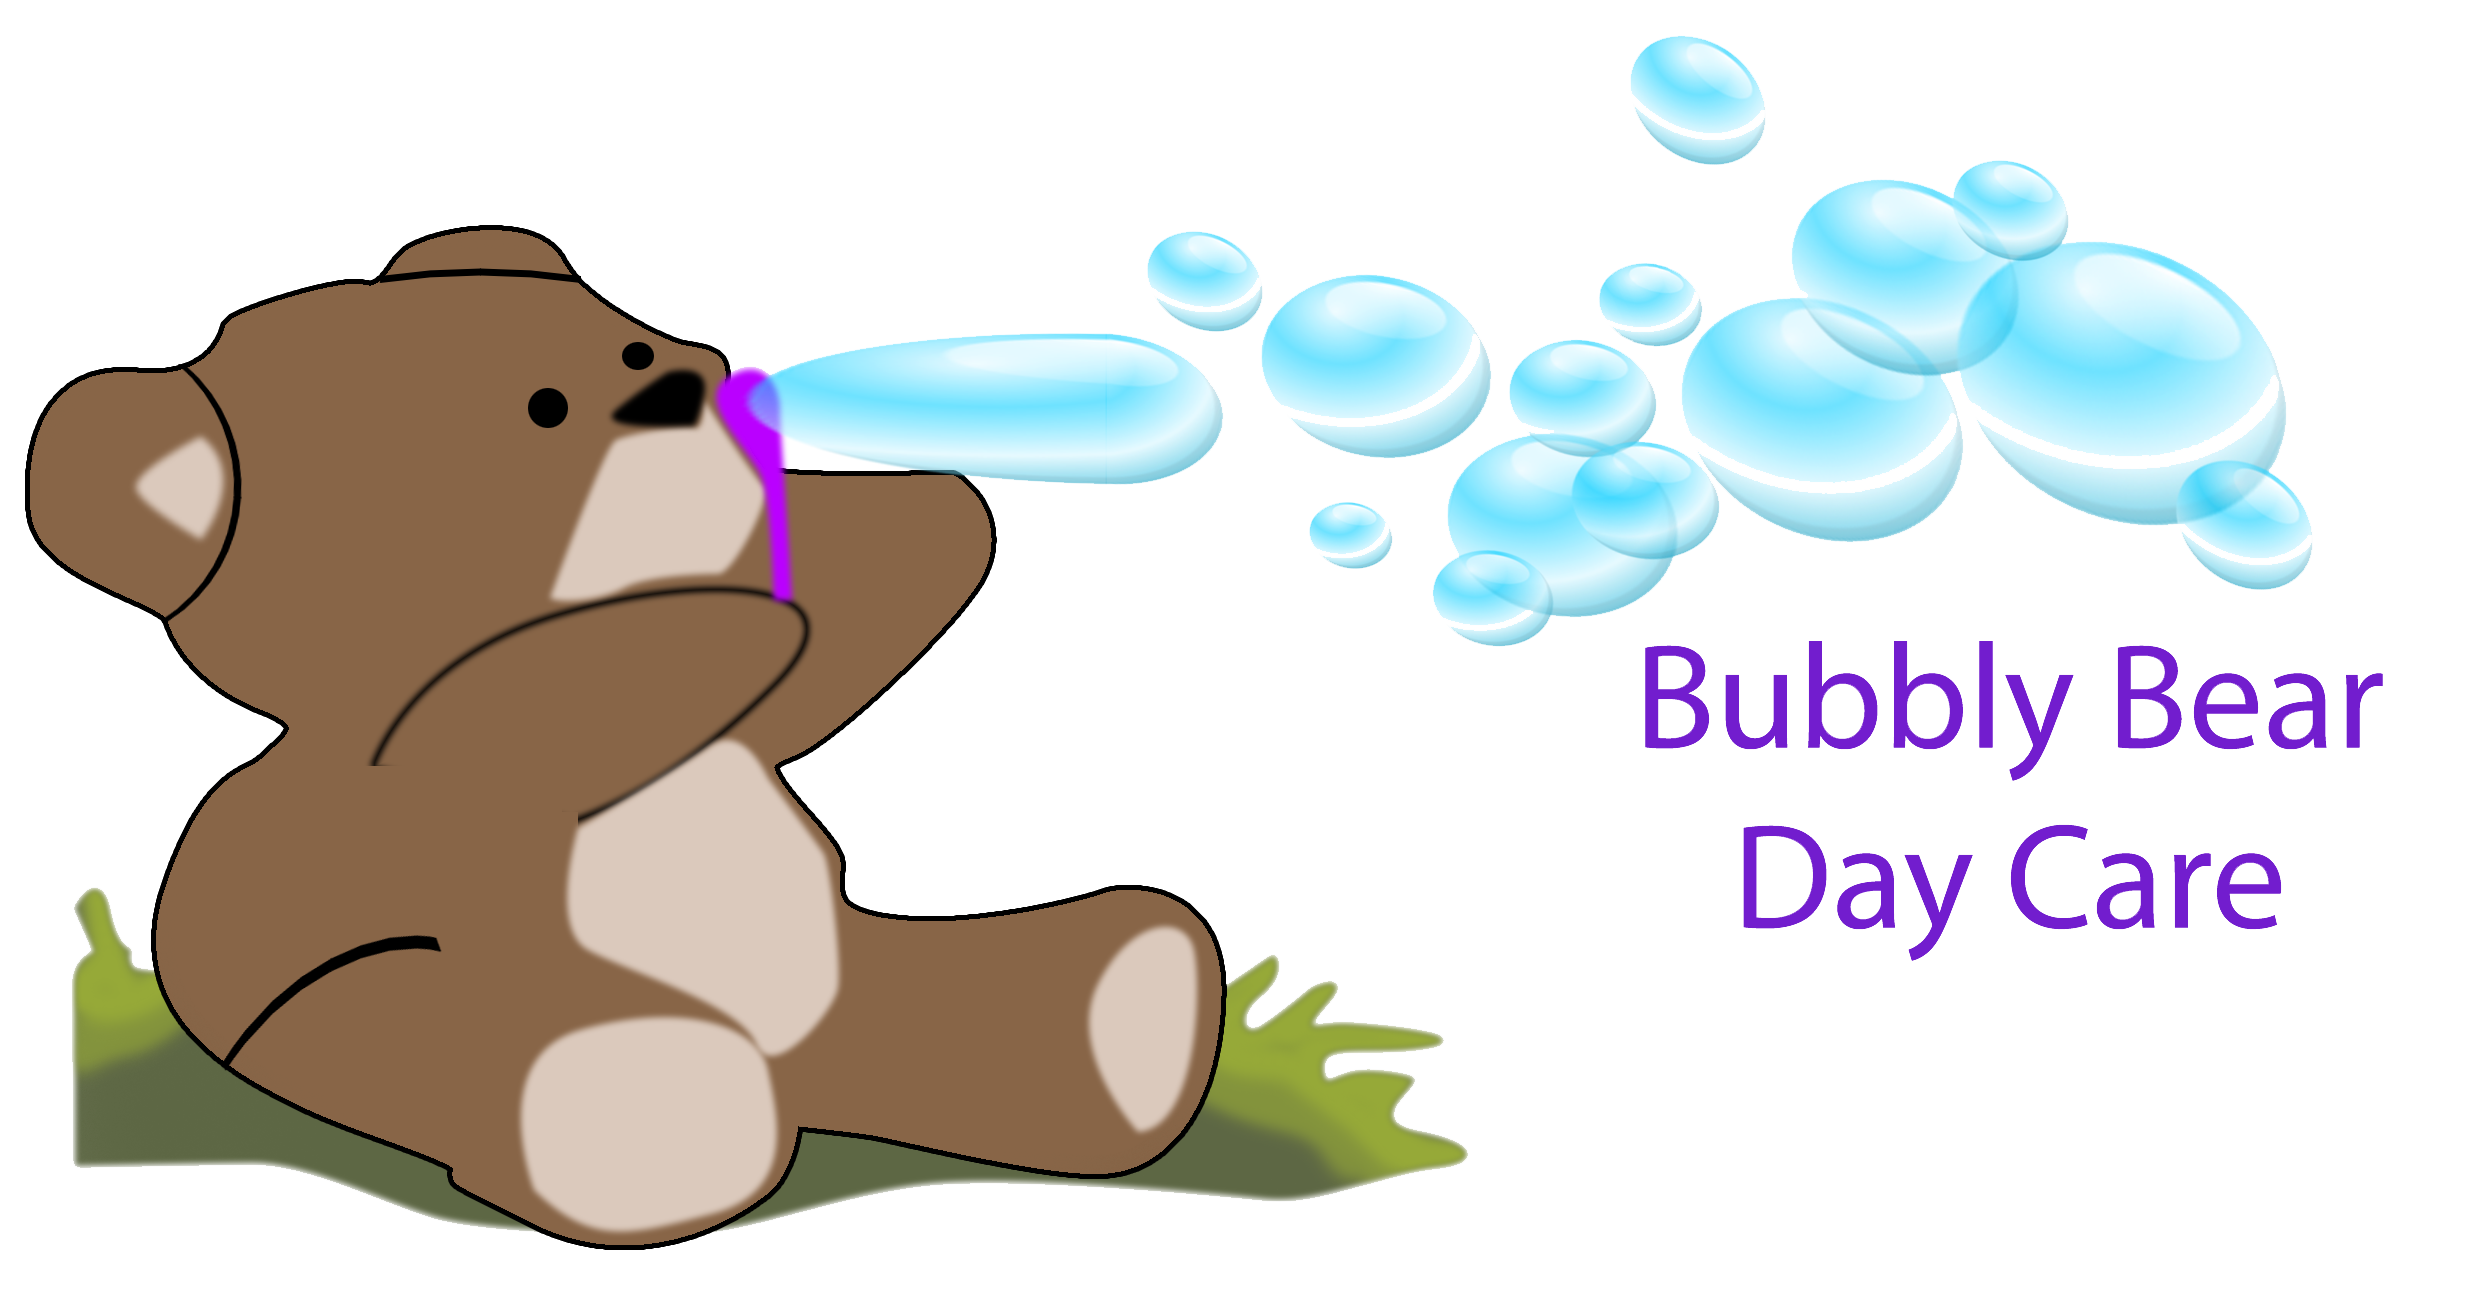 Mud clipart outdoor learning. Bubbly bear ltd help